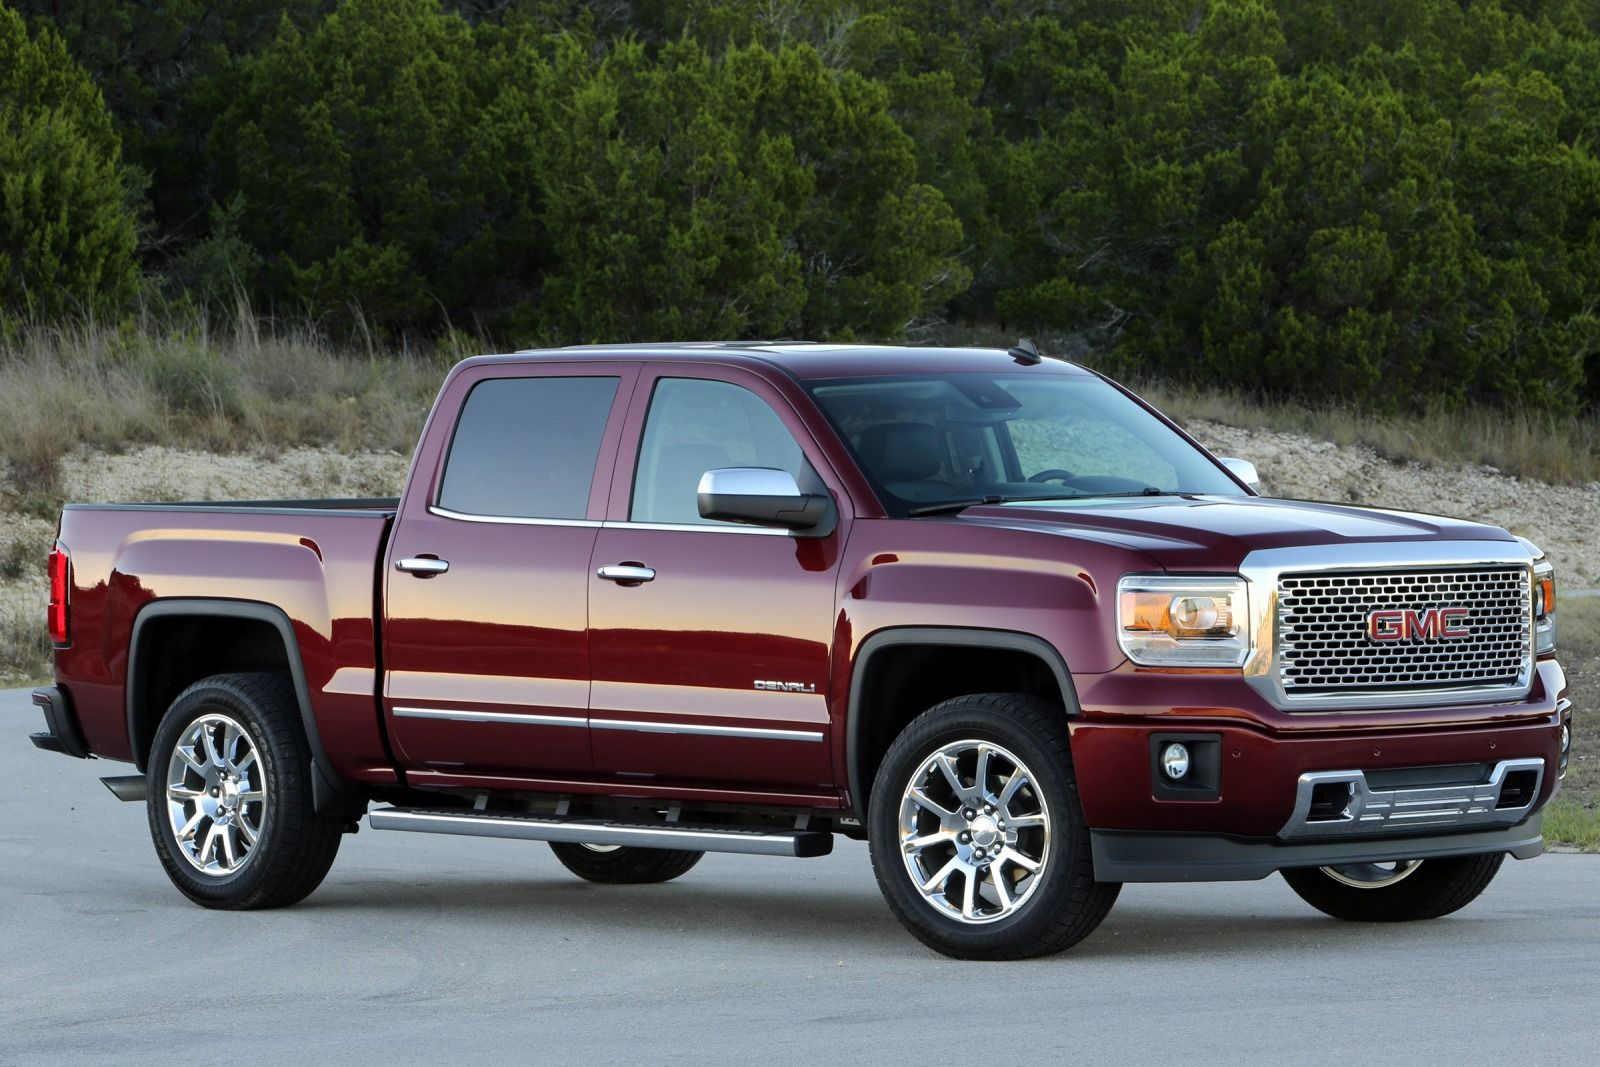 2018 GMC Sierra Denali 1500 Crew Cab | Car Photos Catalog 2019